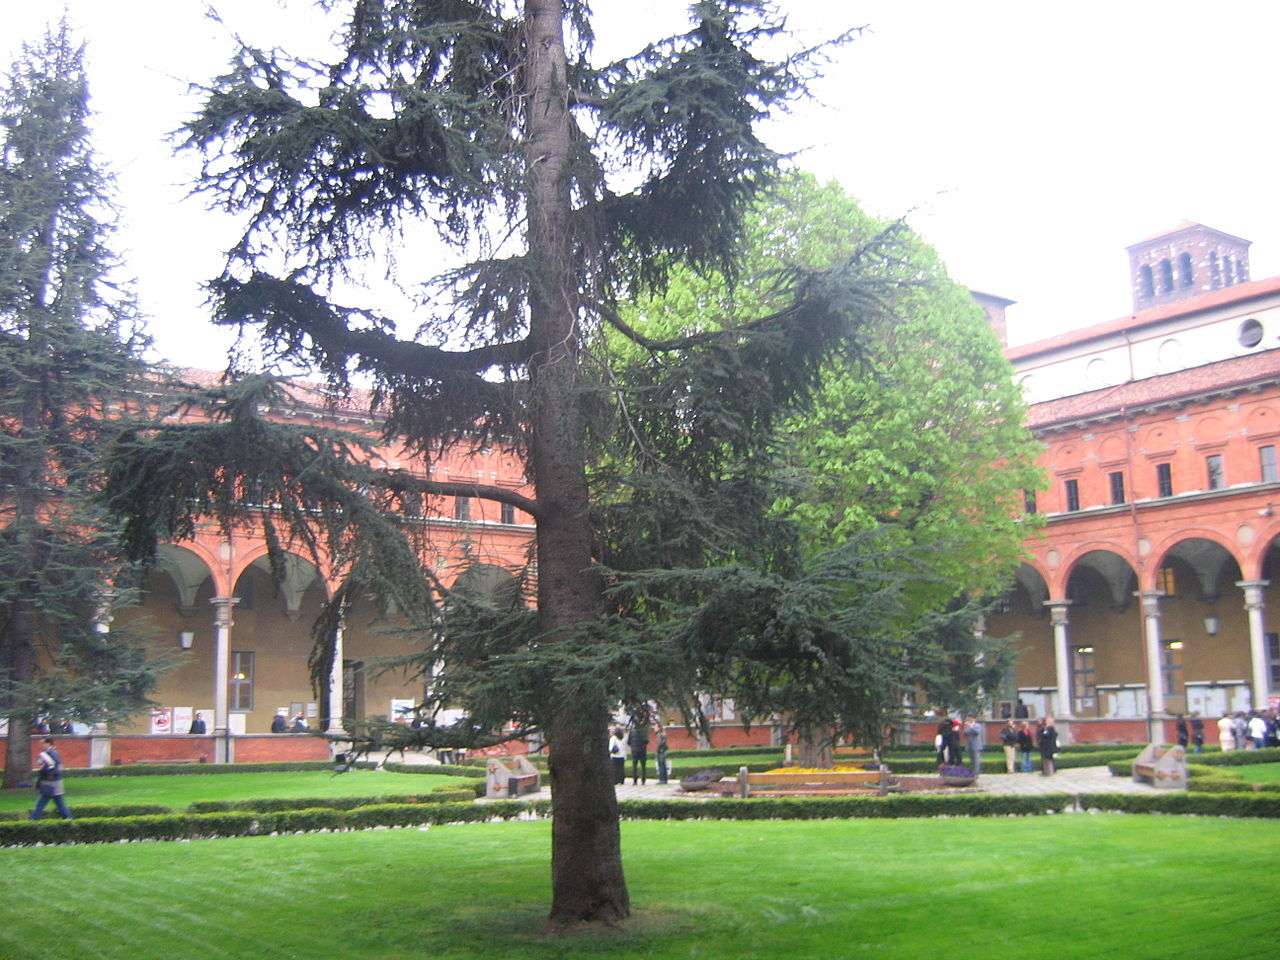 One of the inner yards (a former cloister) of Università Cattolica in Milan.